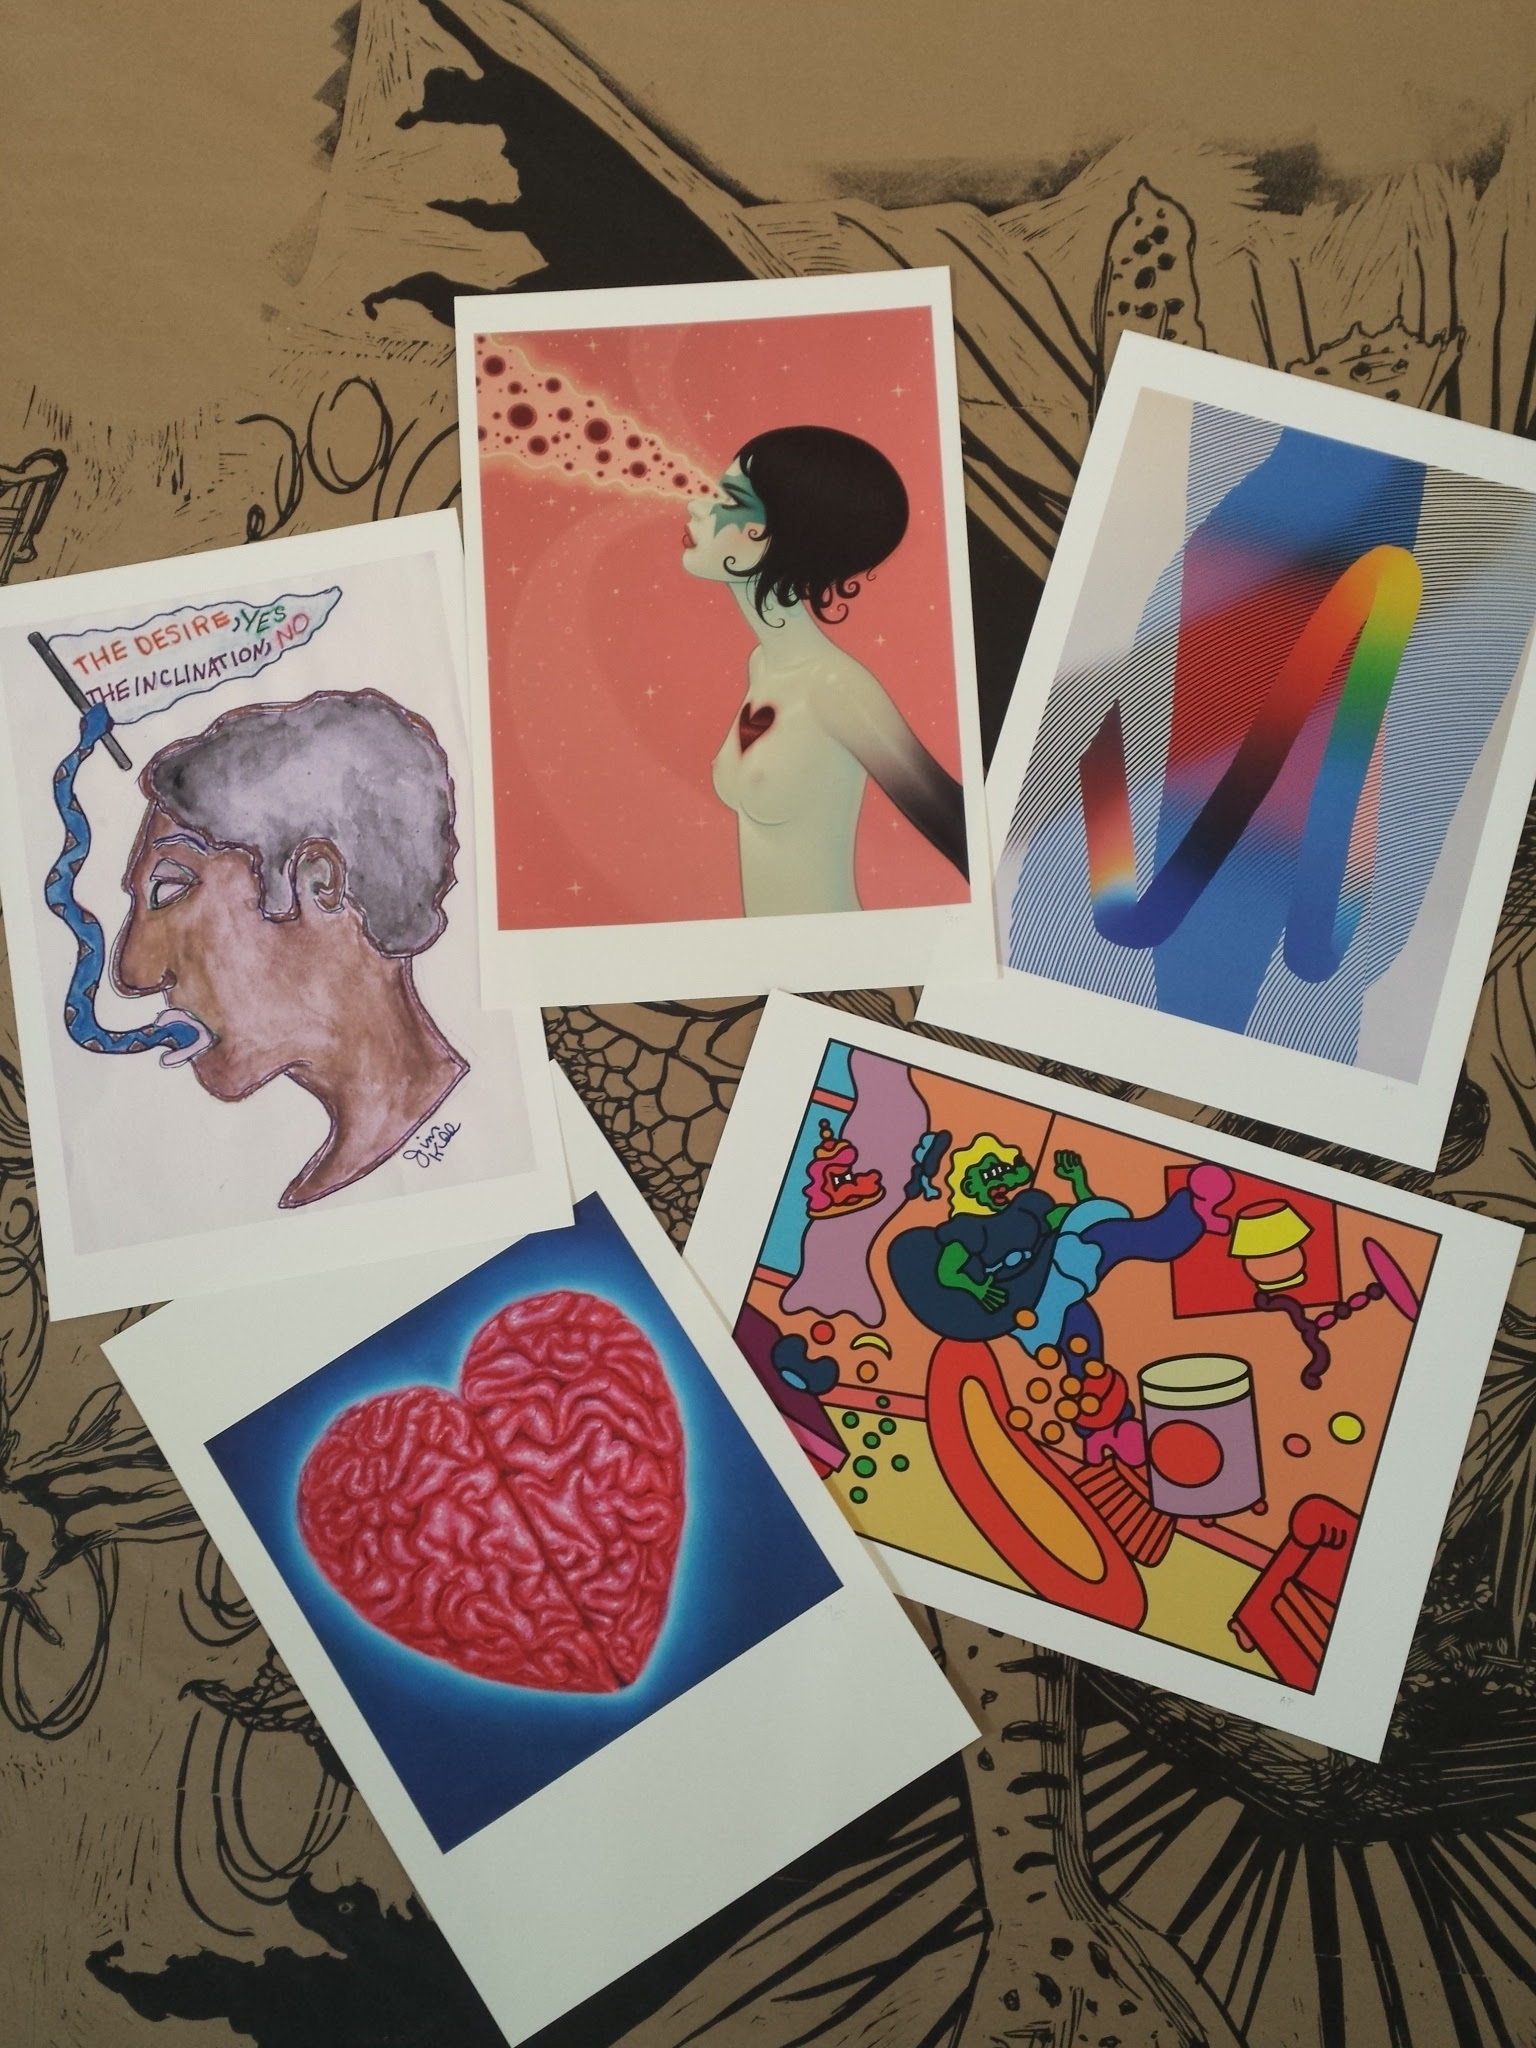 Some of the donated prints.